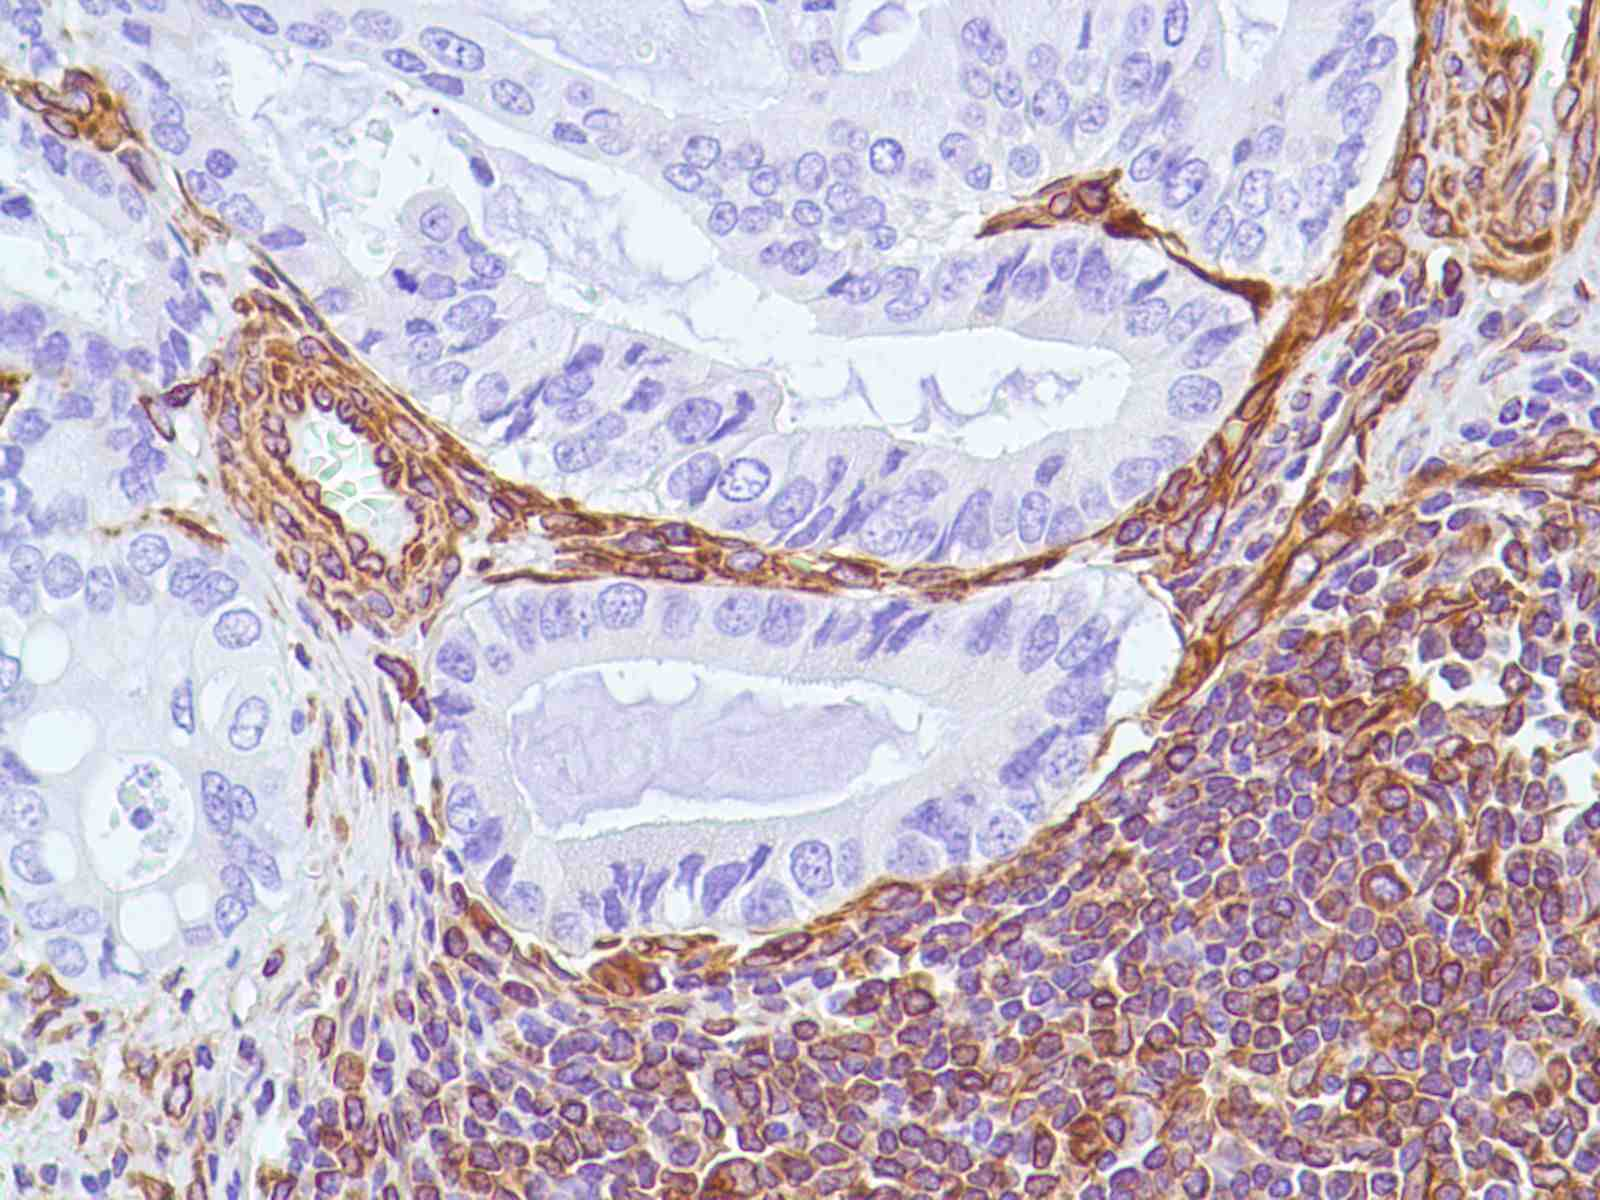 Human Stomach Adenocarcinoma stained with anti-Vimentin antibody